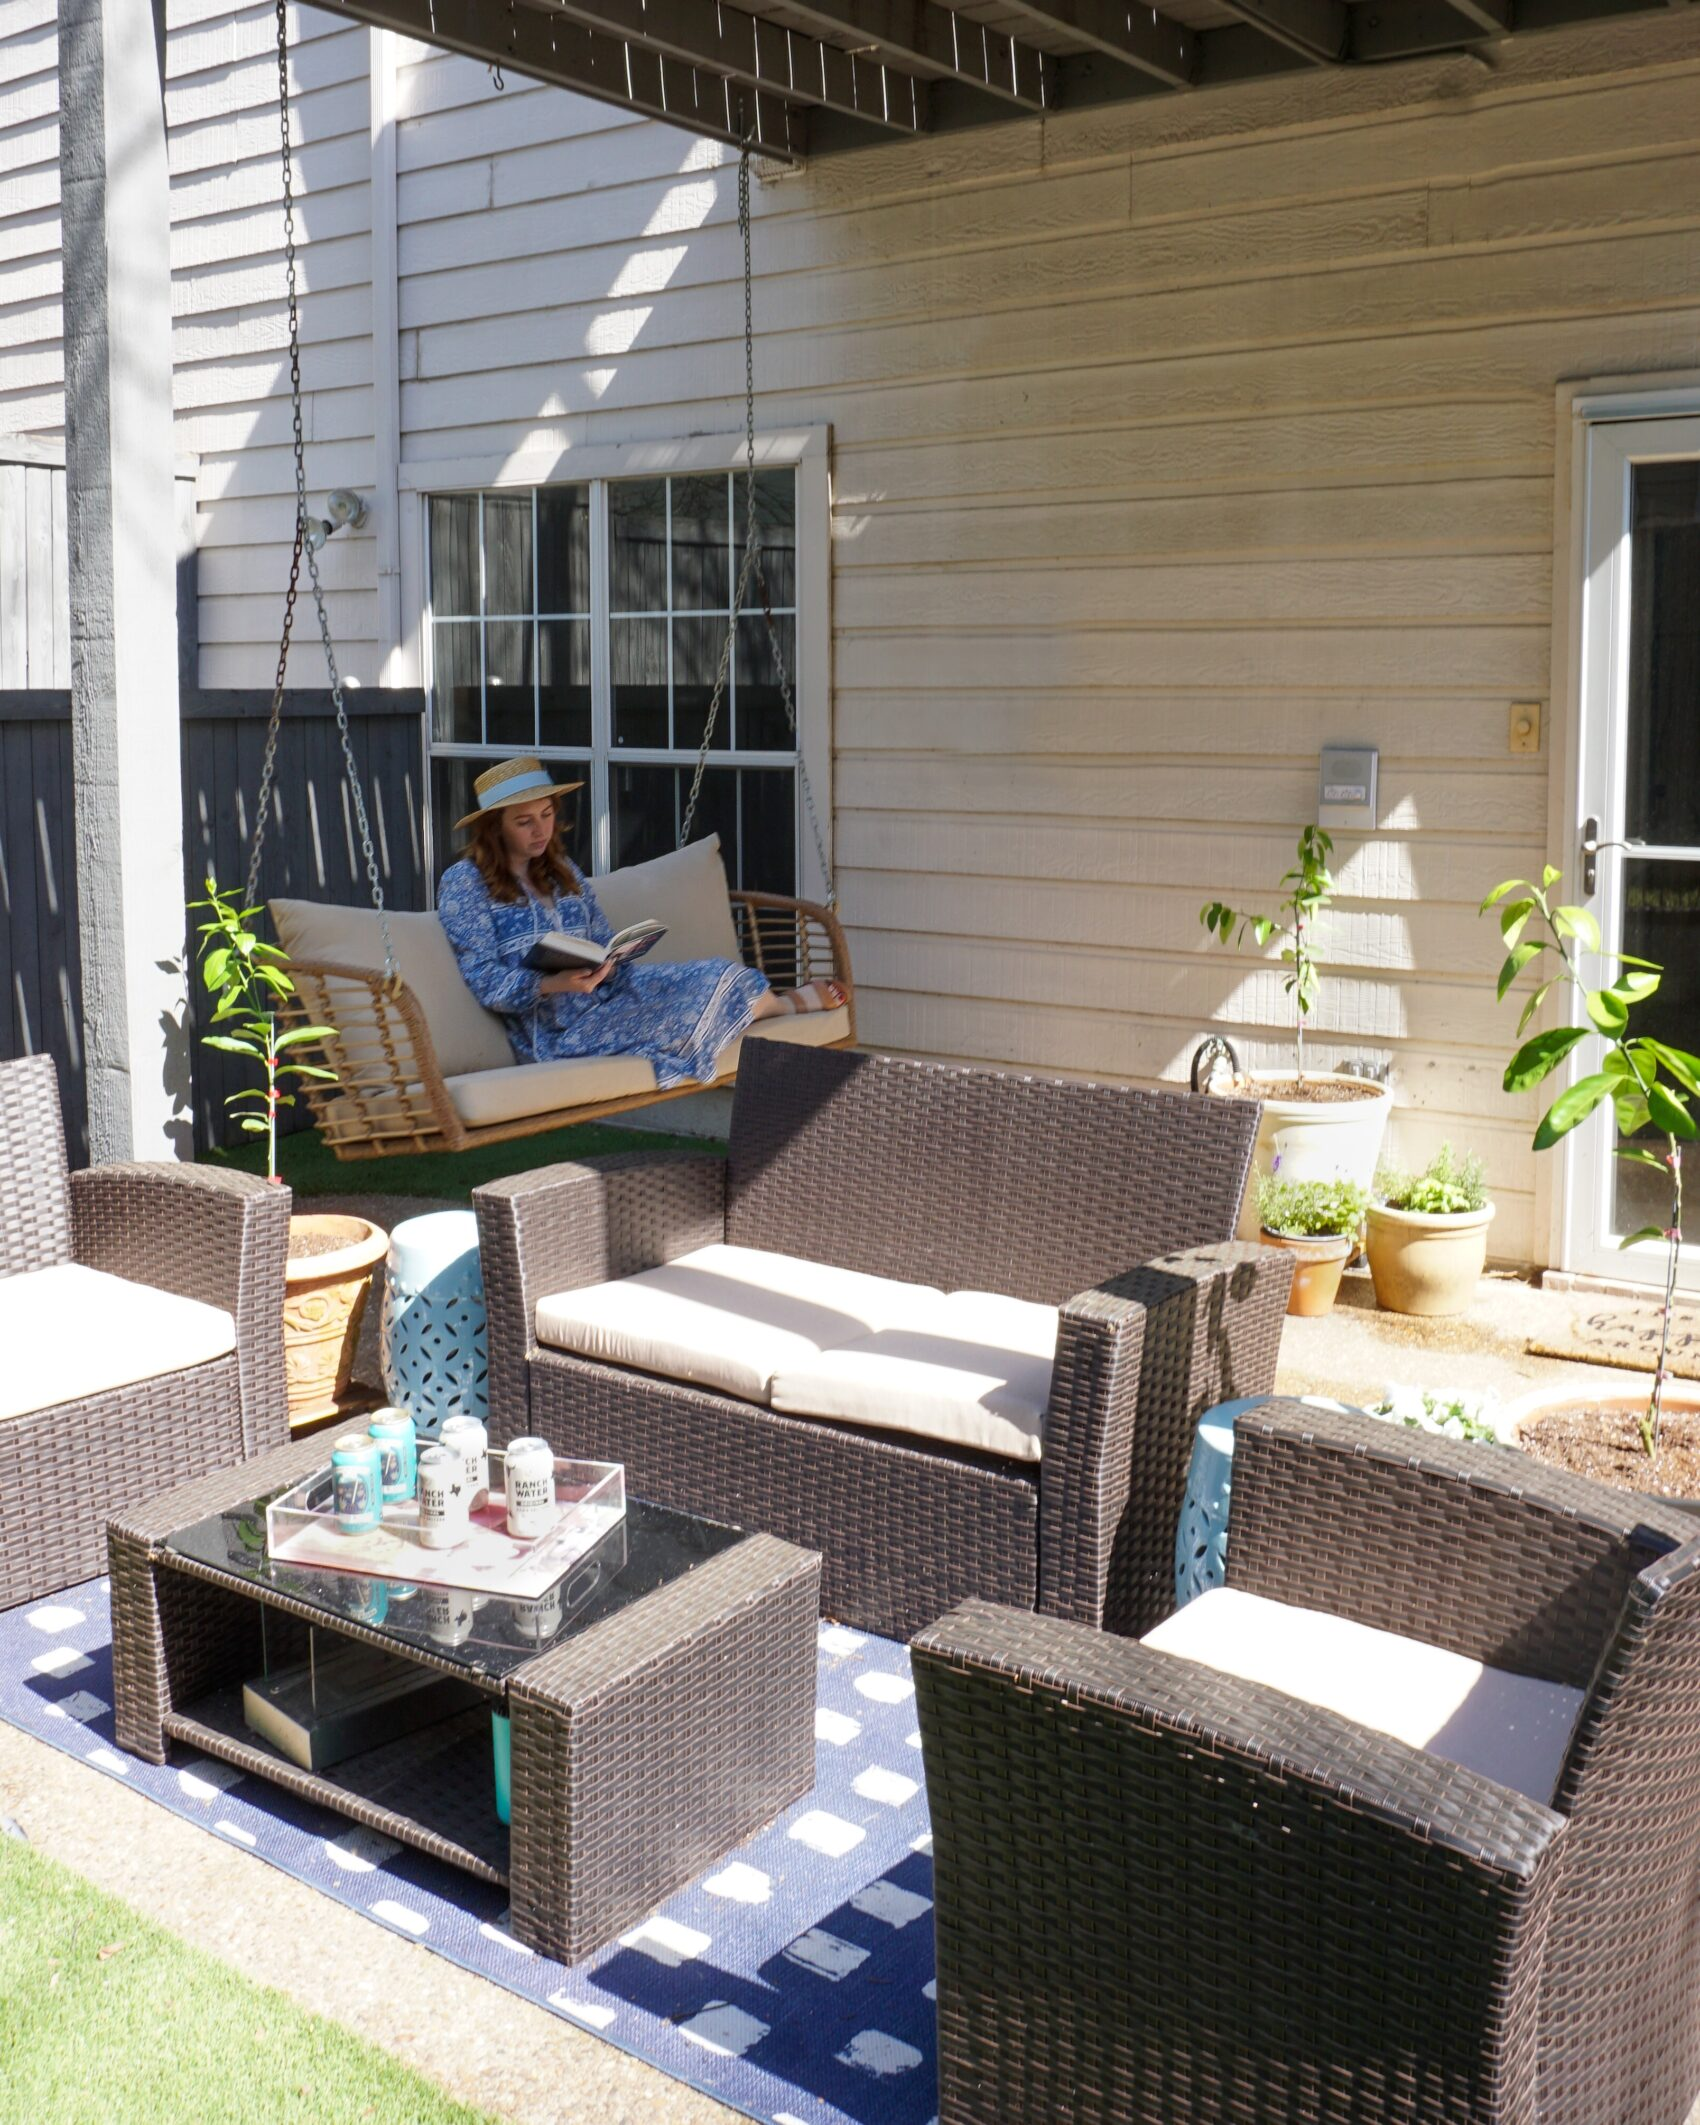 Blogger shares outdoor living space reveal as she redid her backyard entertaining area, turning her backyard into a plant-filled outside living room.